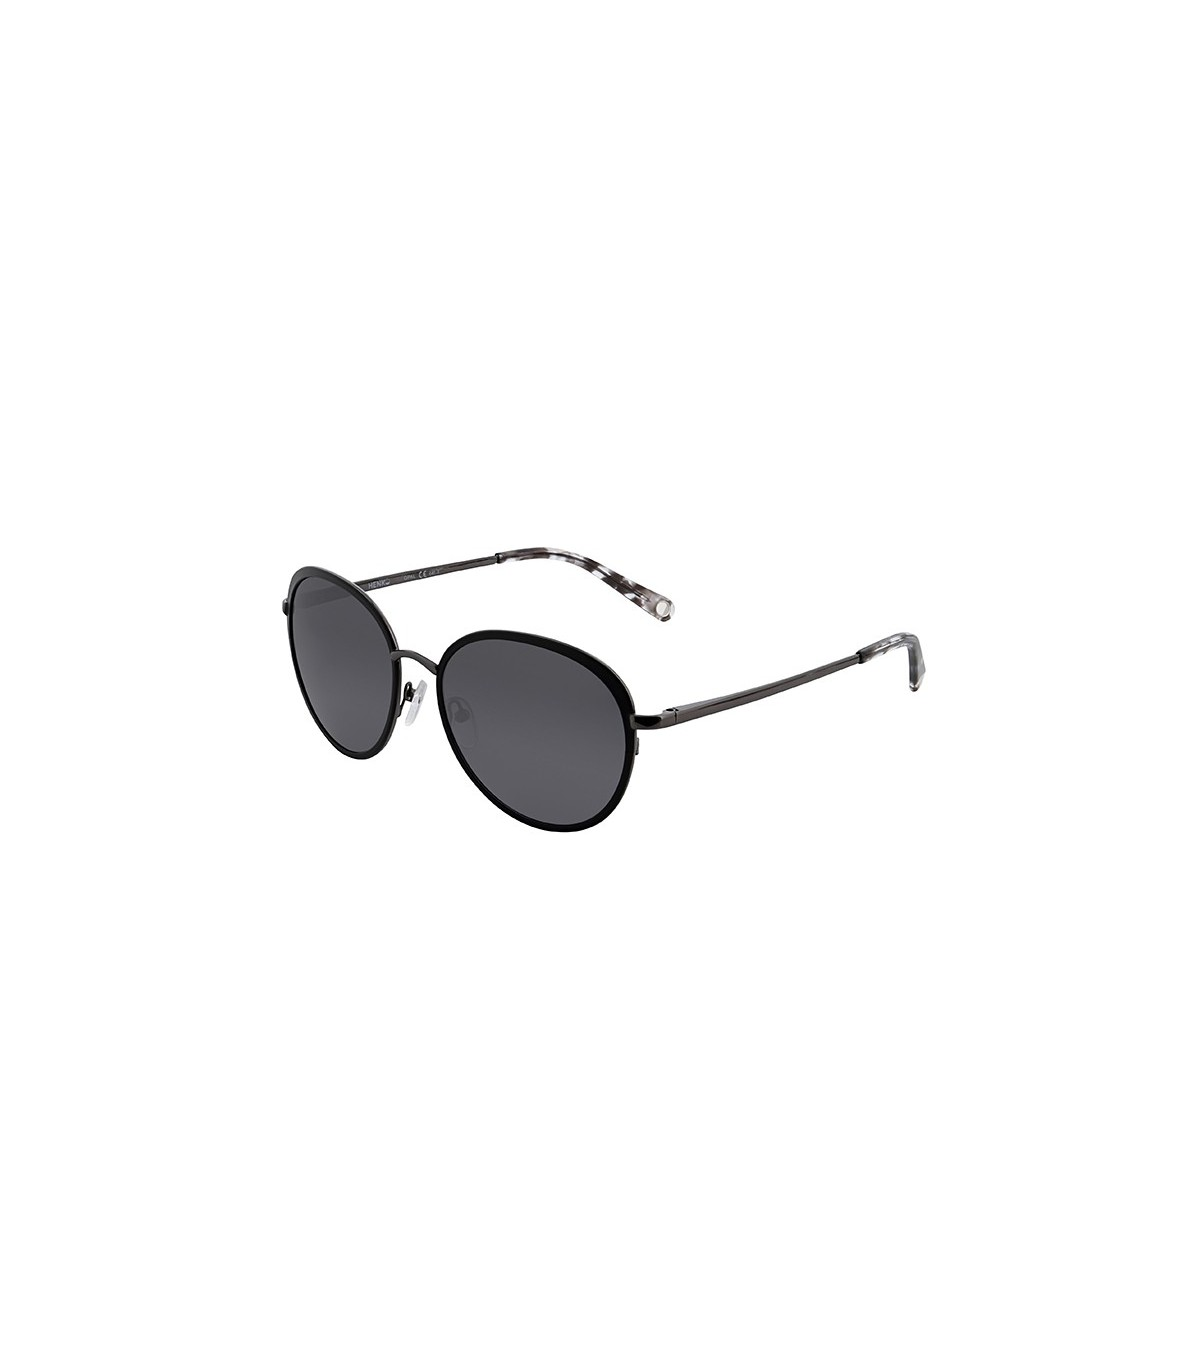 Henko Sunglasses (prescription optional) POMS059